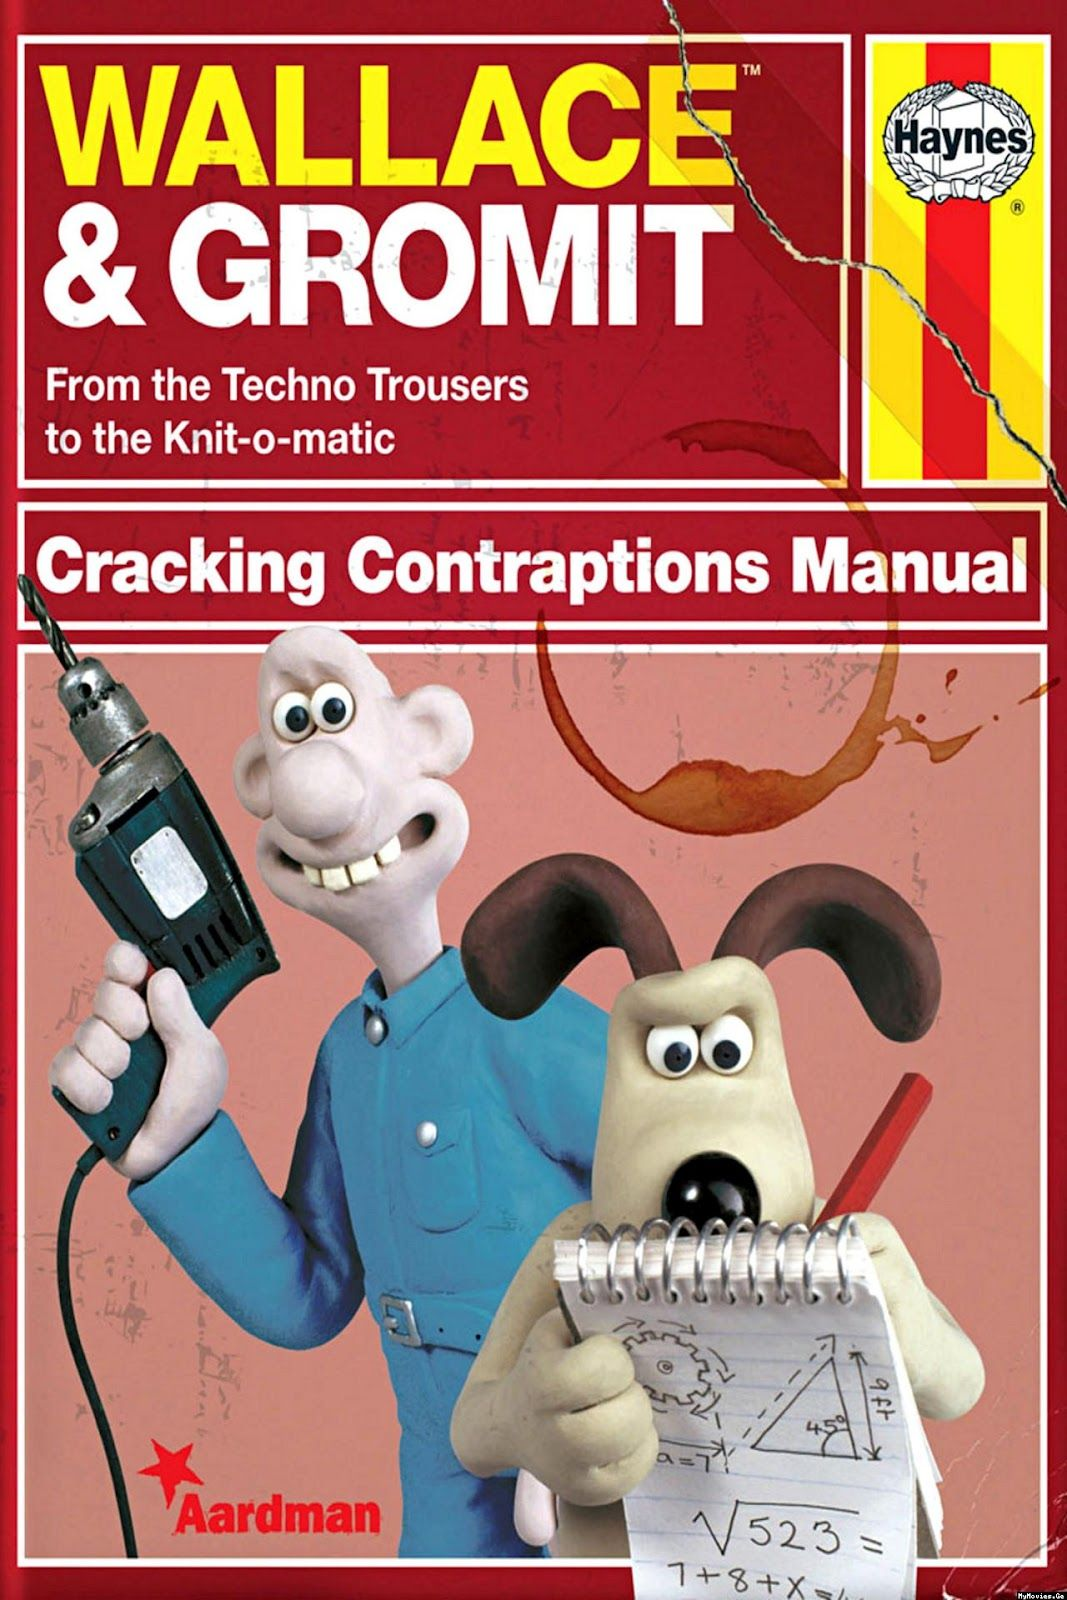 Wallace And Gromit Cracking Contraptions Manual I Wish This Manual Existed Wallace Aardman Animations Shaun The Sheep